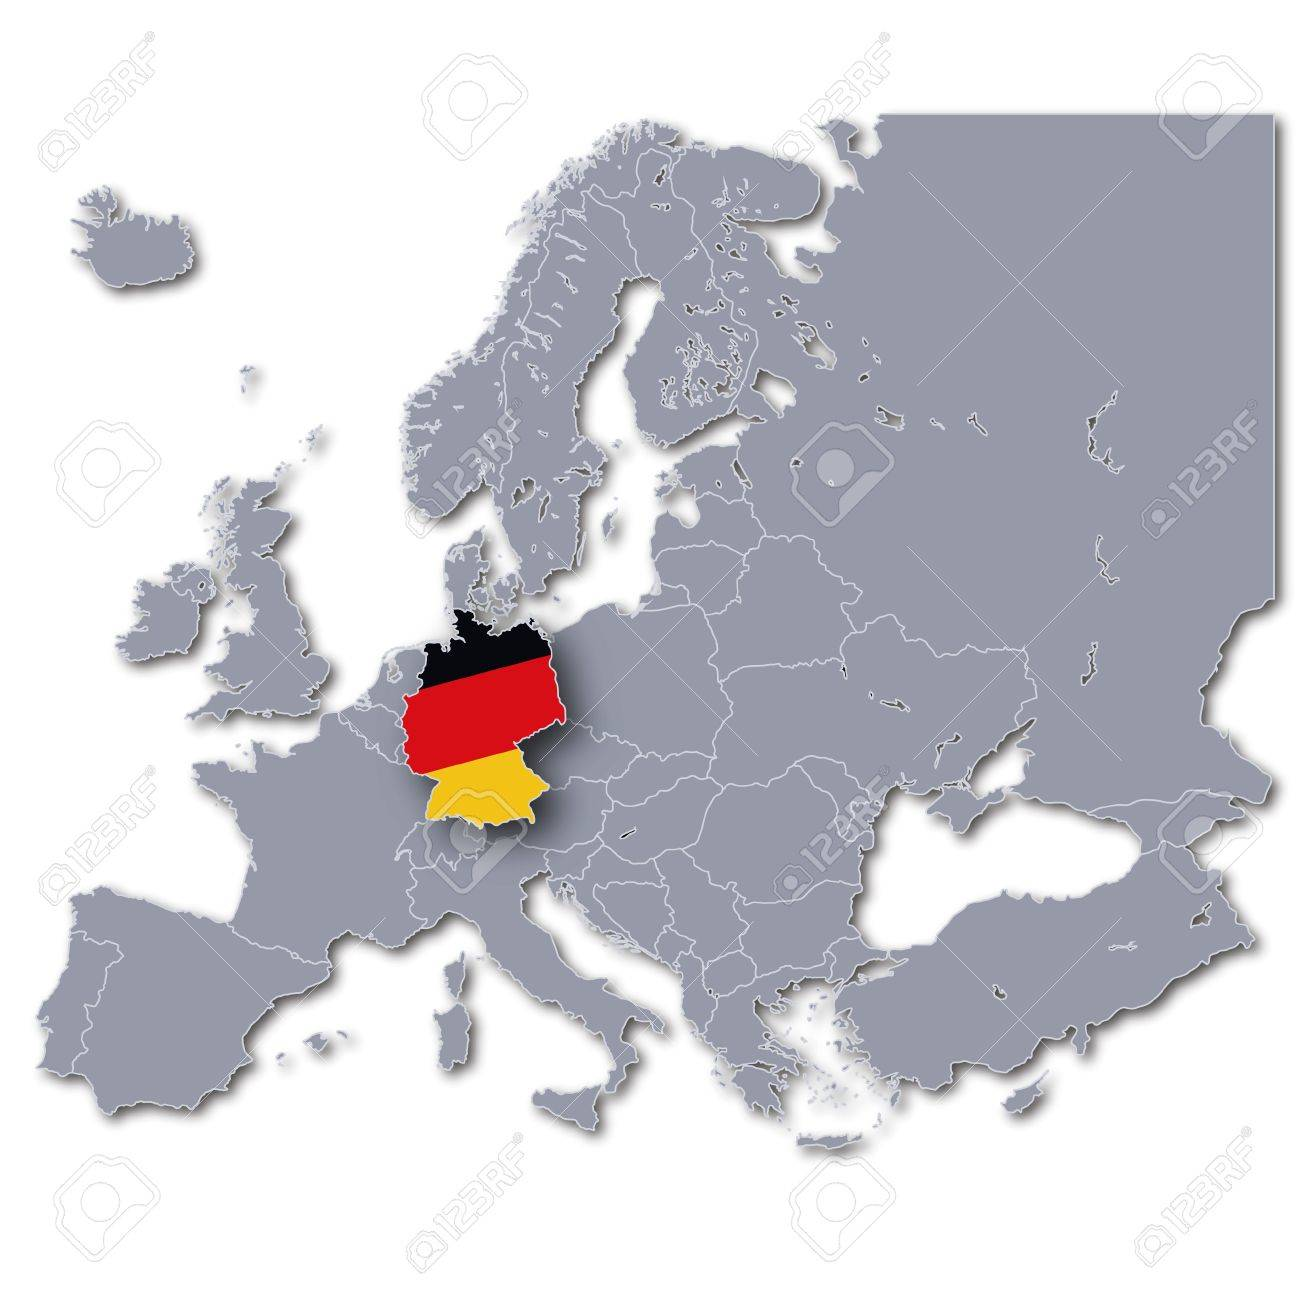 Europe Map Germany Stock Photo Picture And Royalty Free Image - Germany map europe